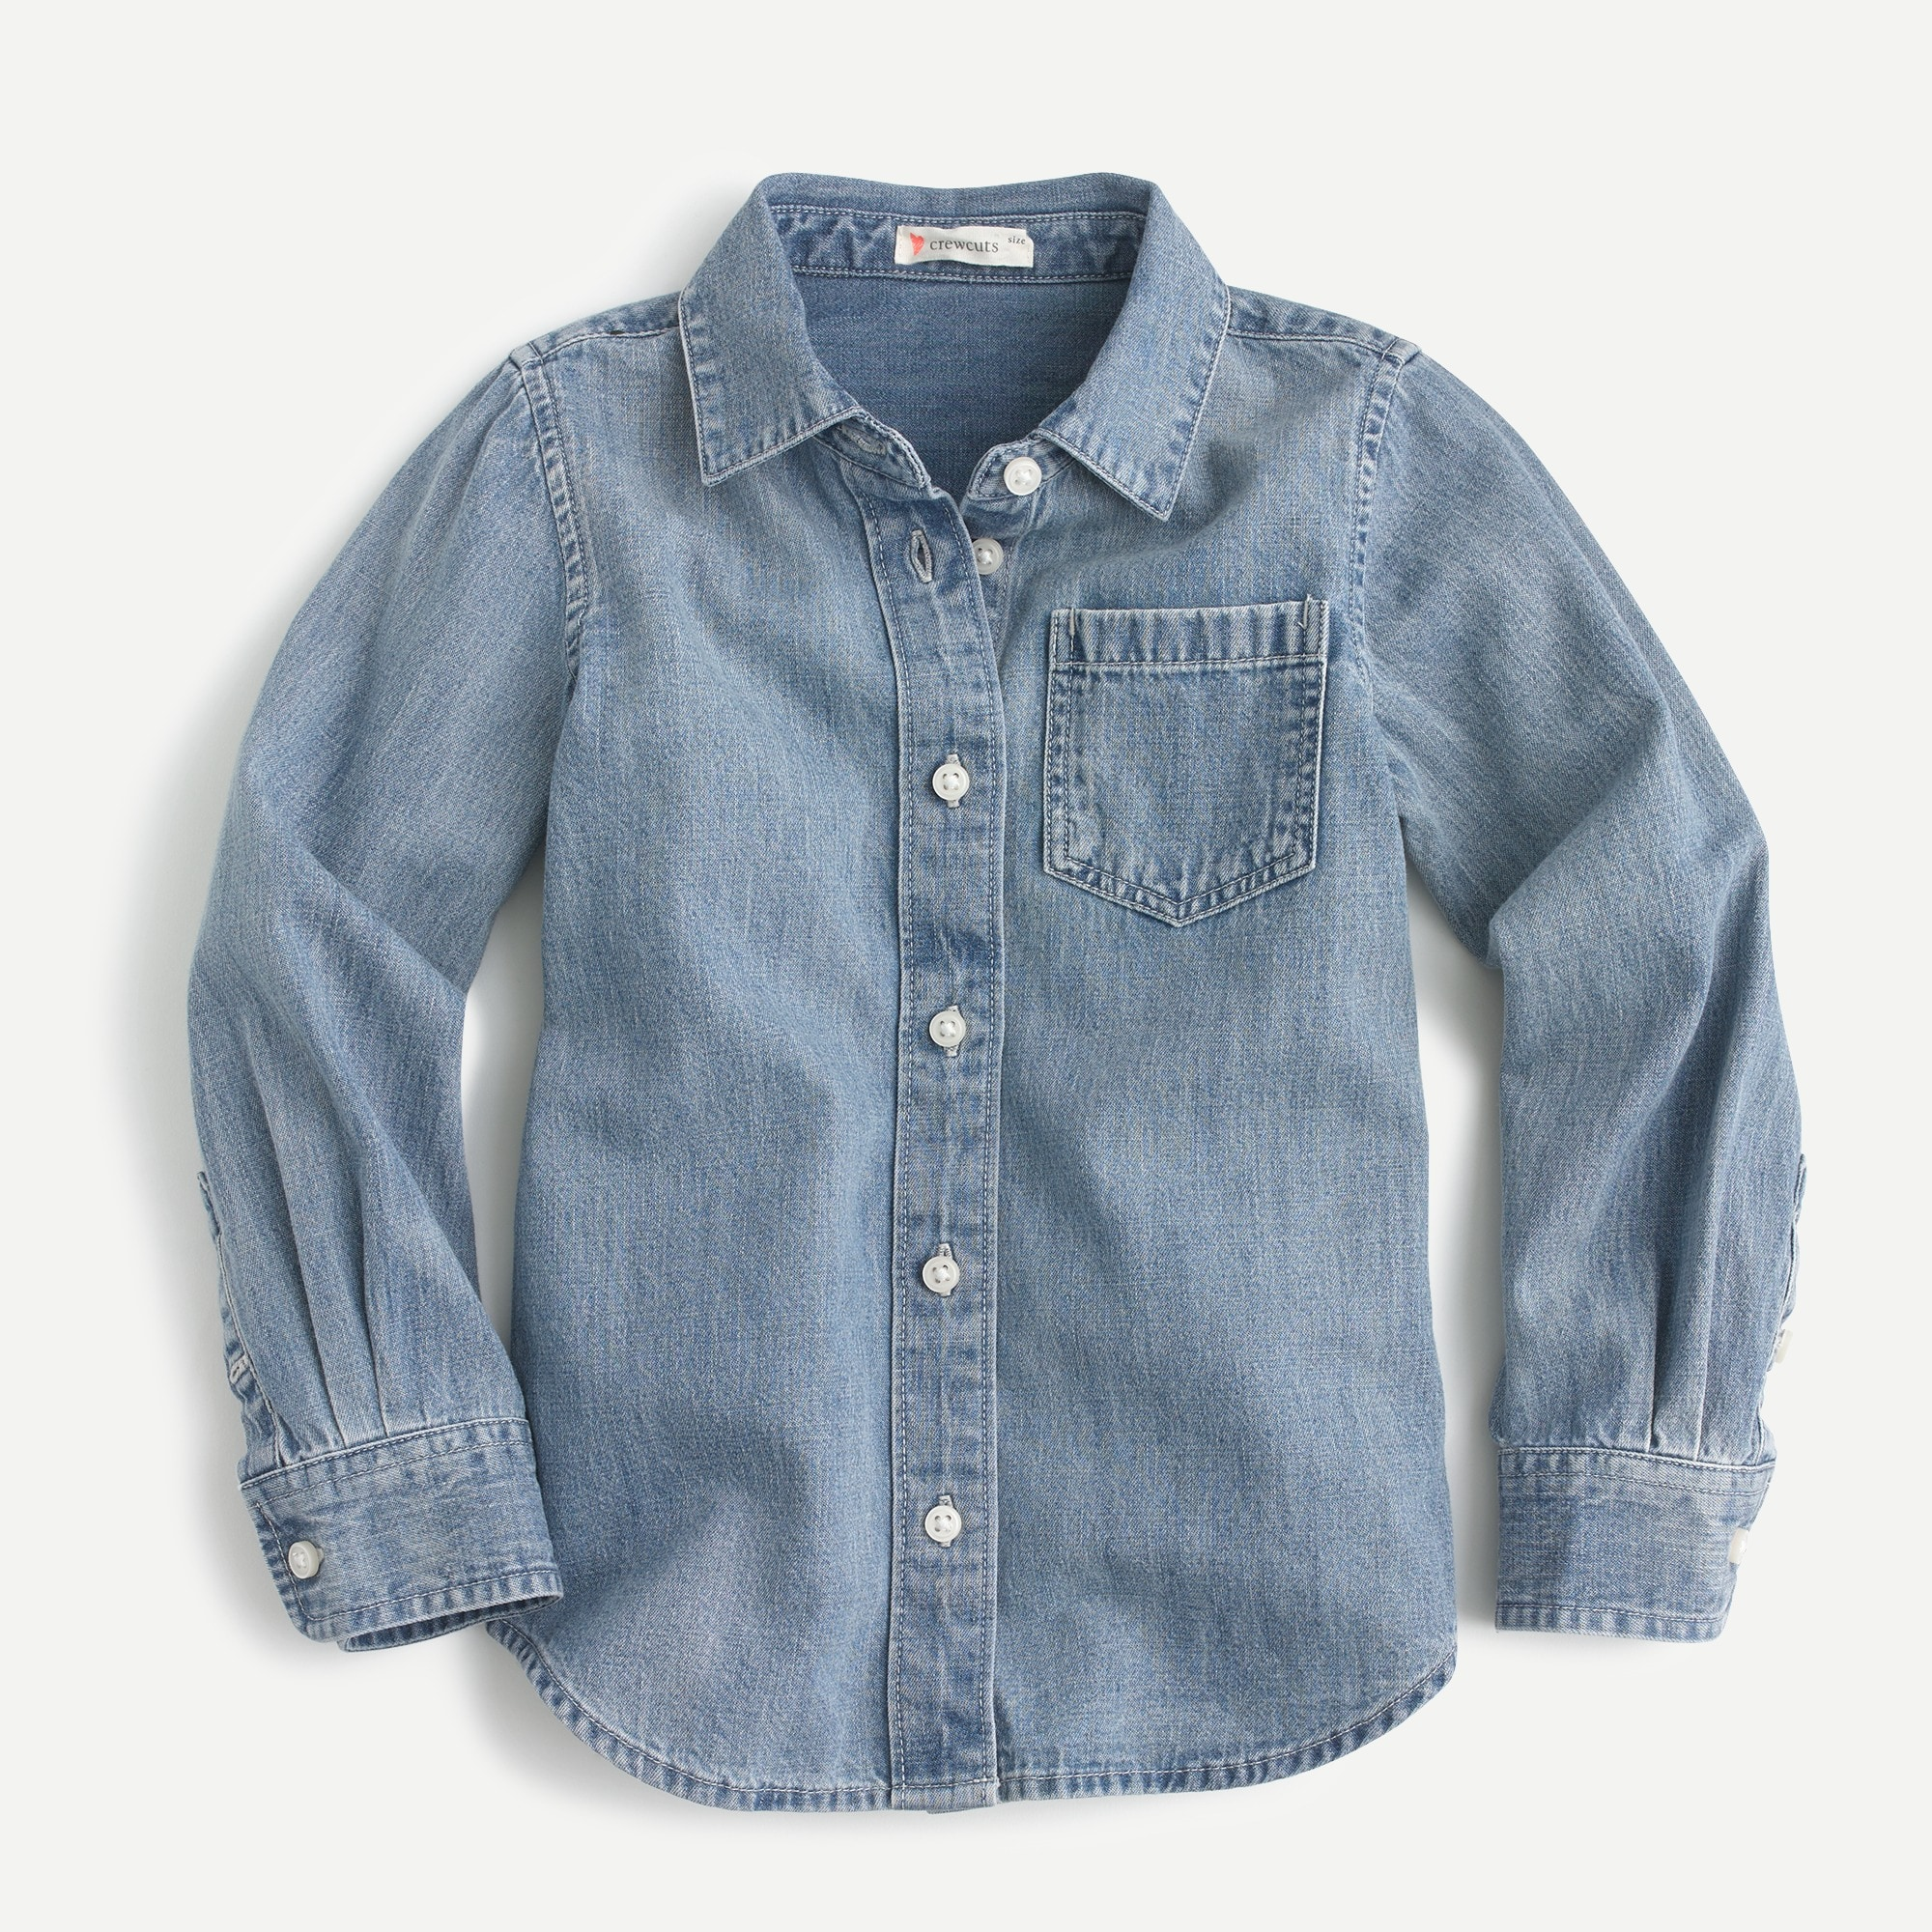 Girls' 365 chambray shirt